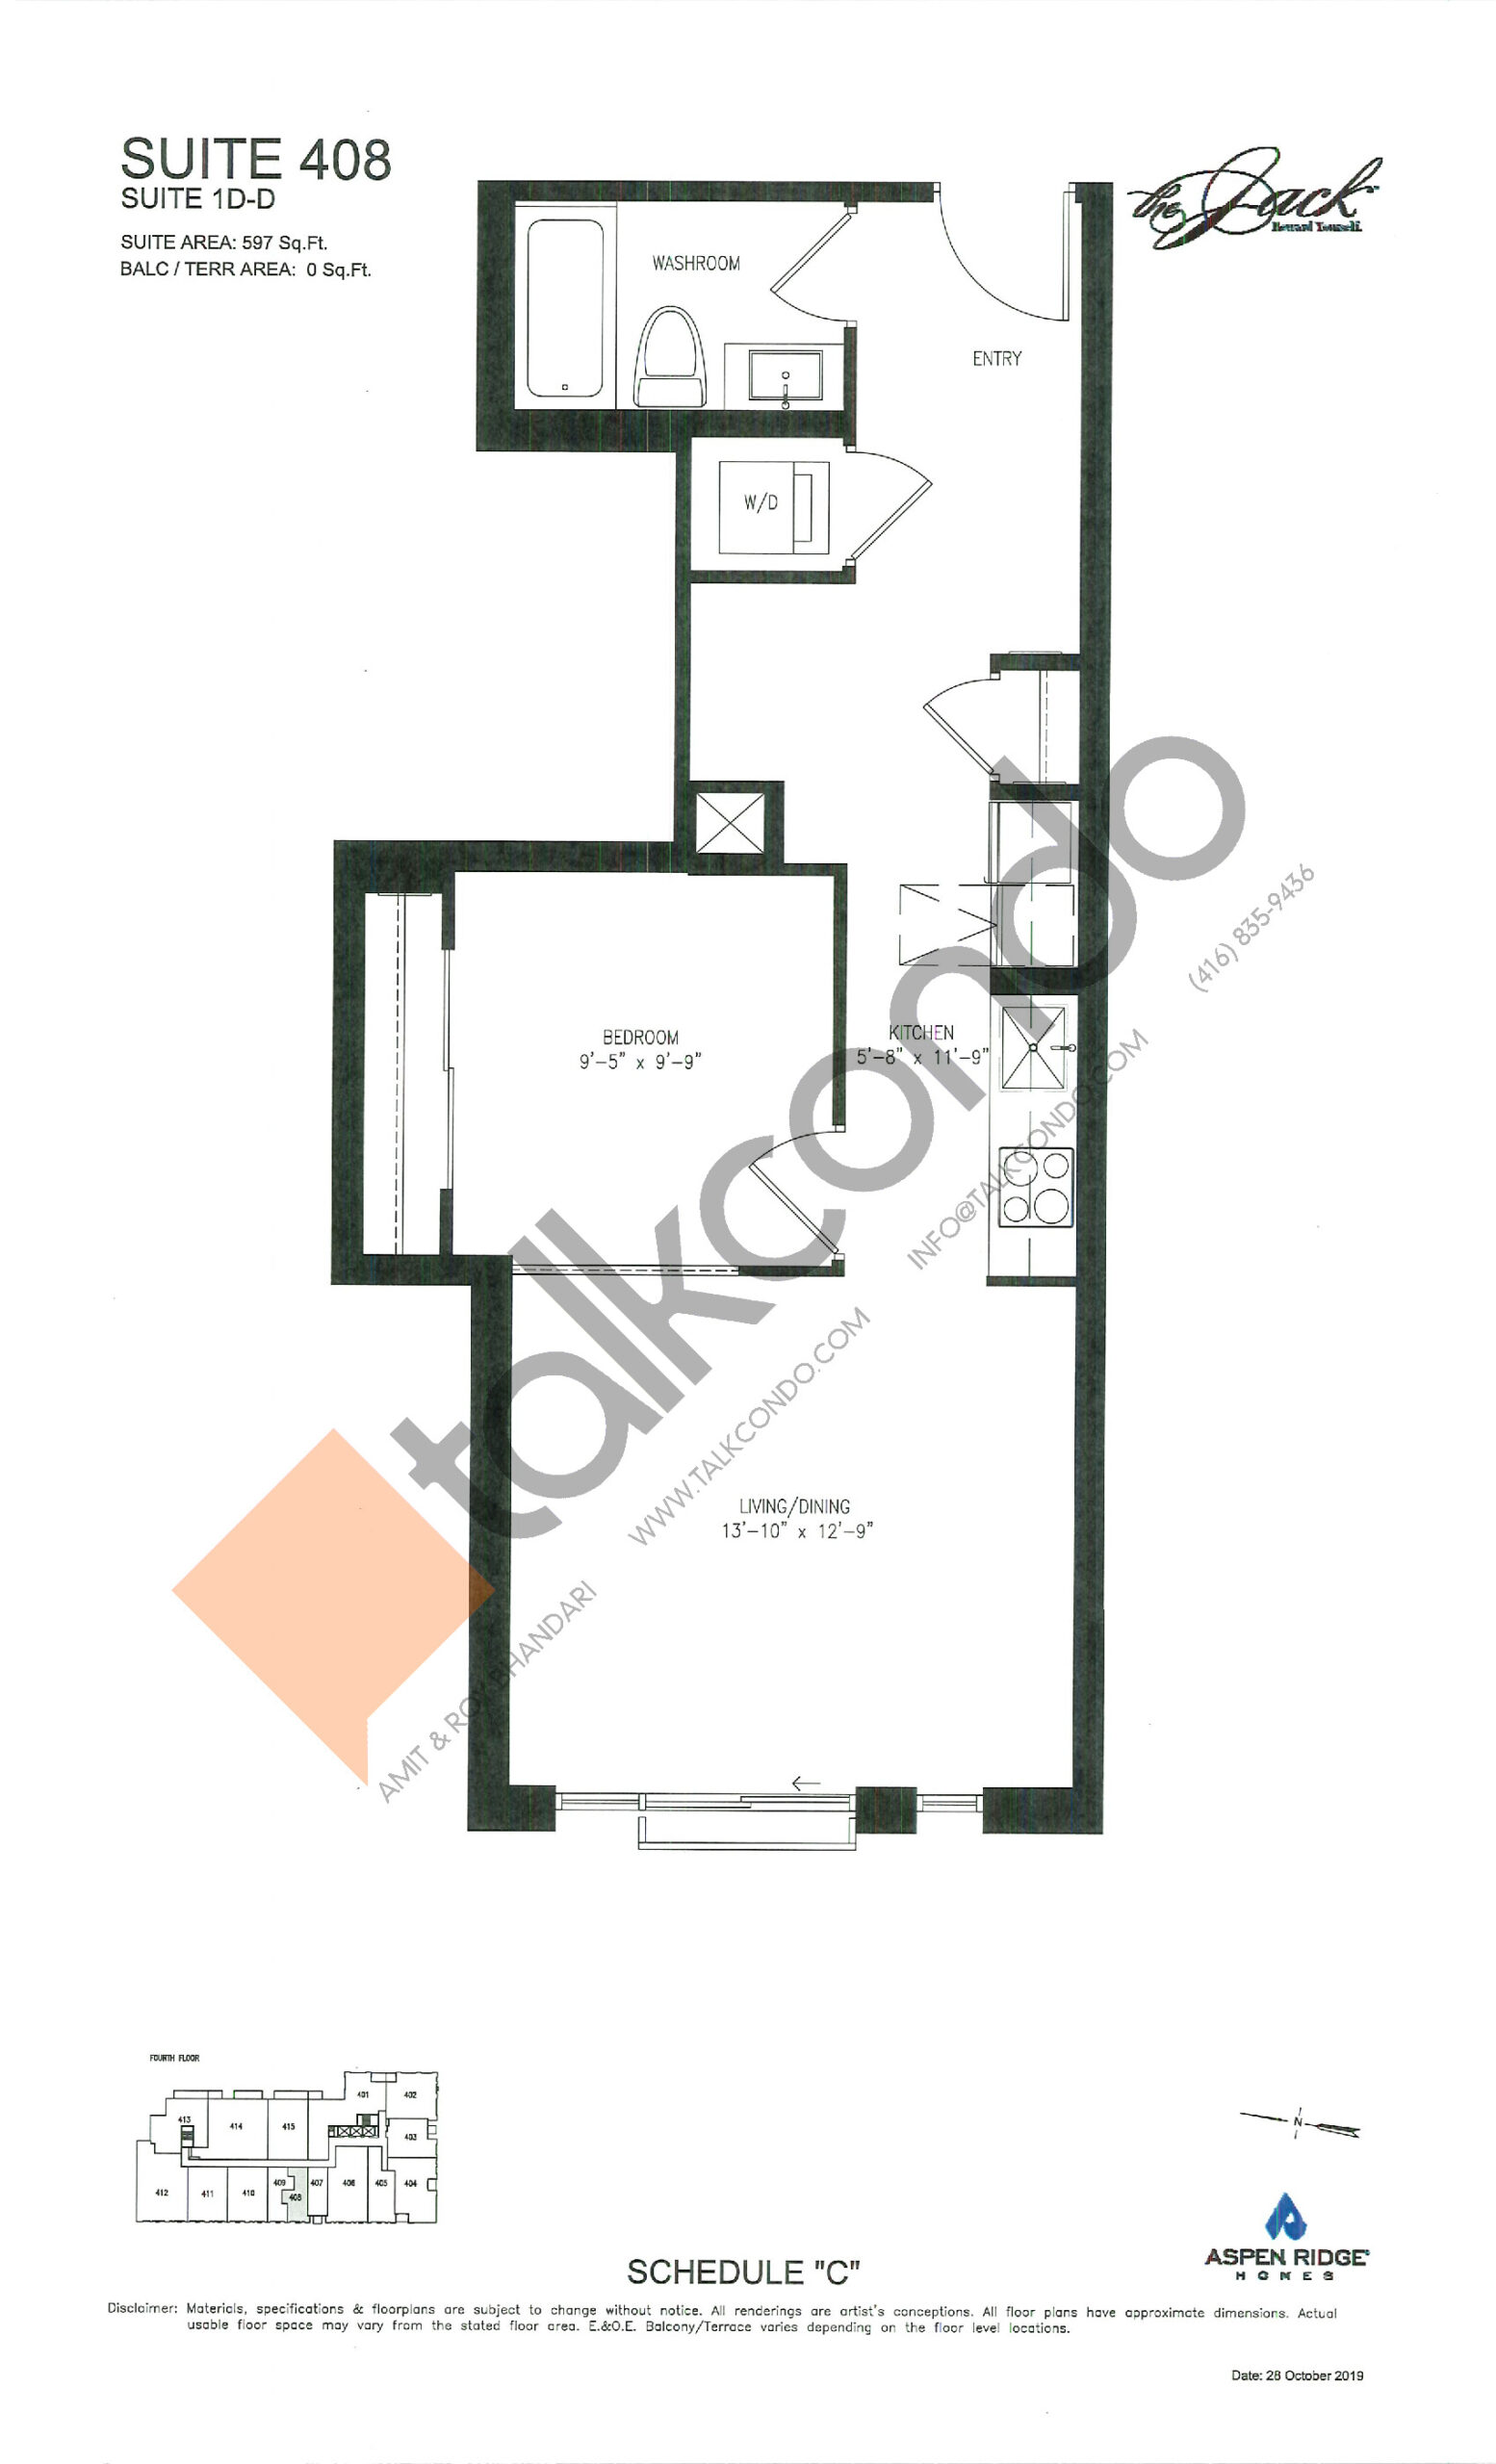 Suite 408 Floor Plan at The Jack Condos - 597 sq.ft